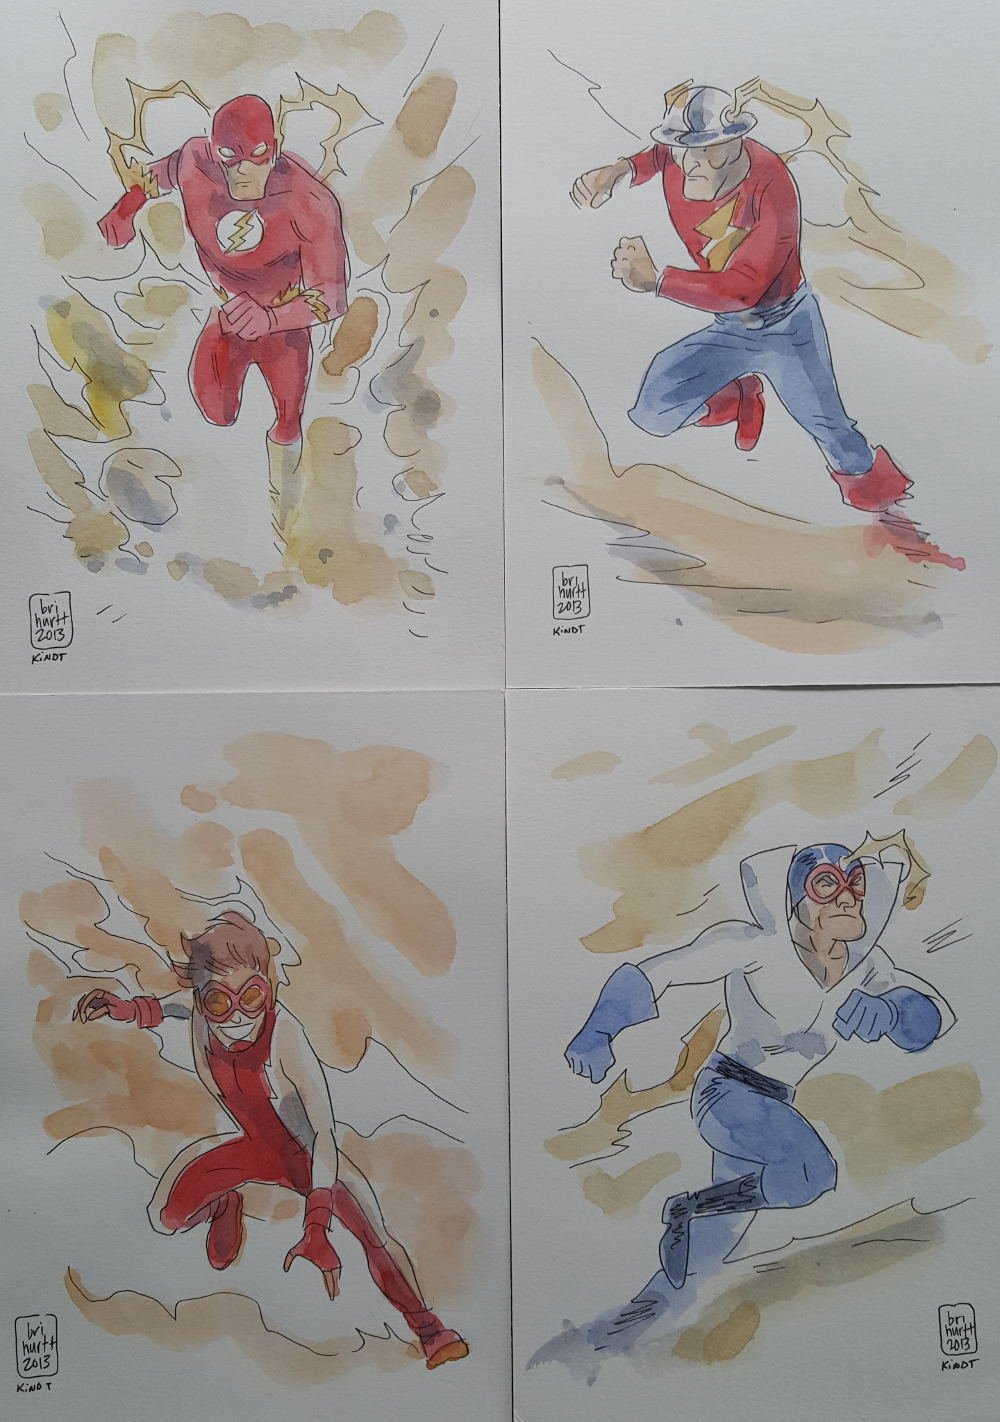 The Flash Family by Brian Hurtt and Matt Kindt